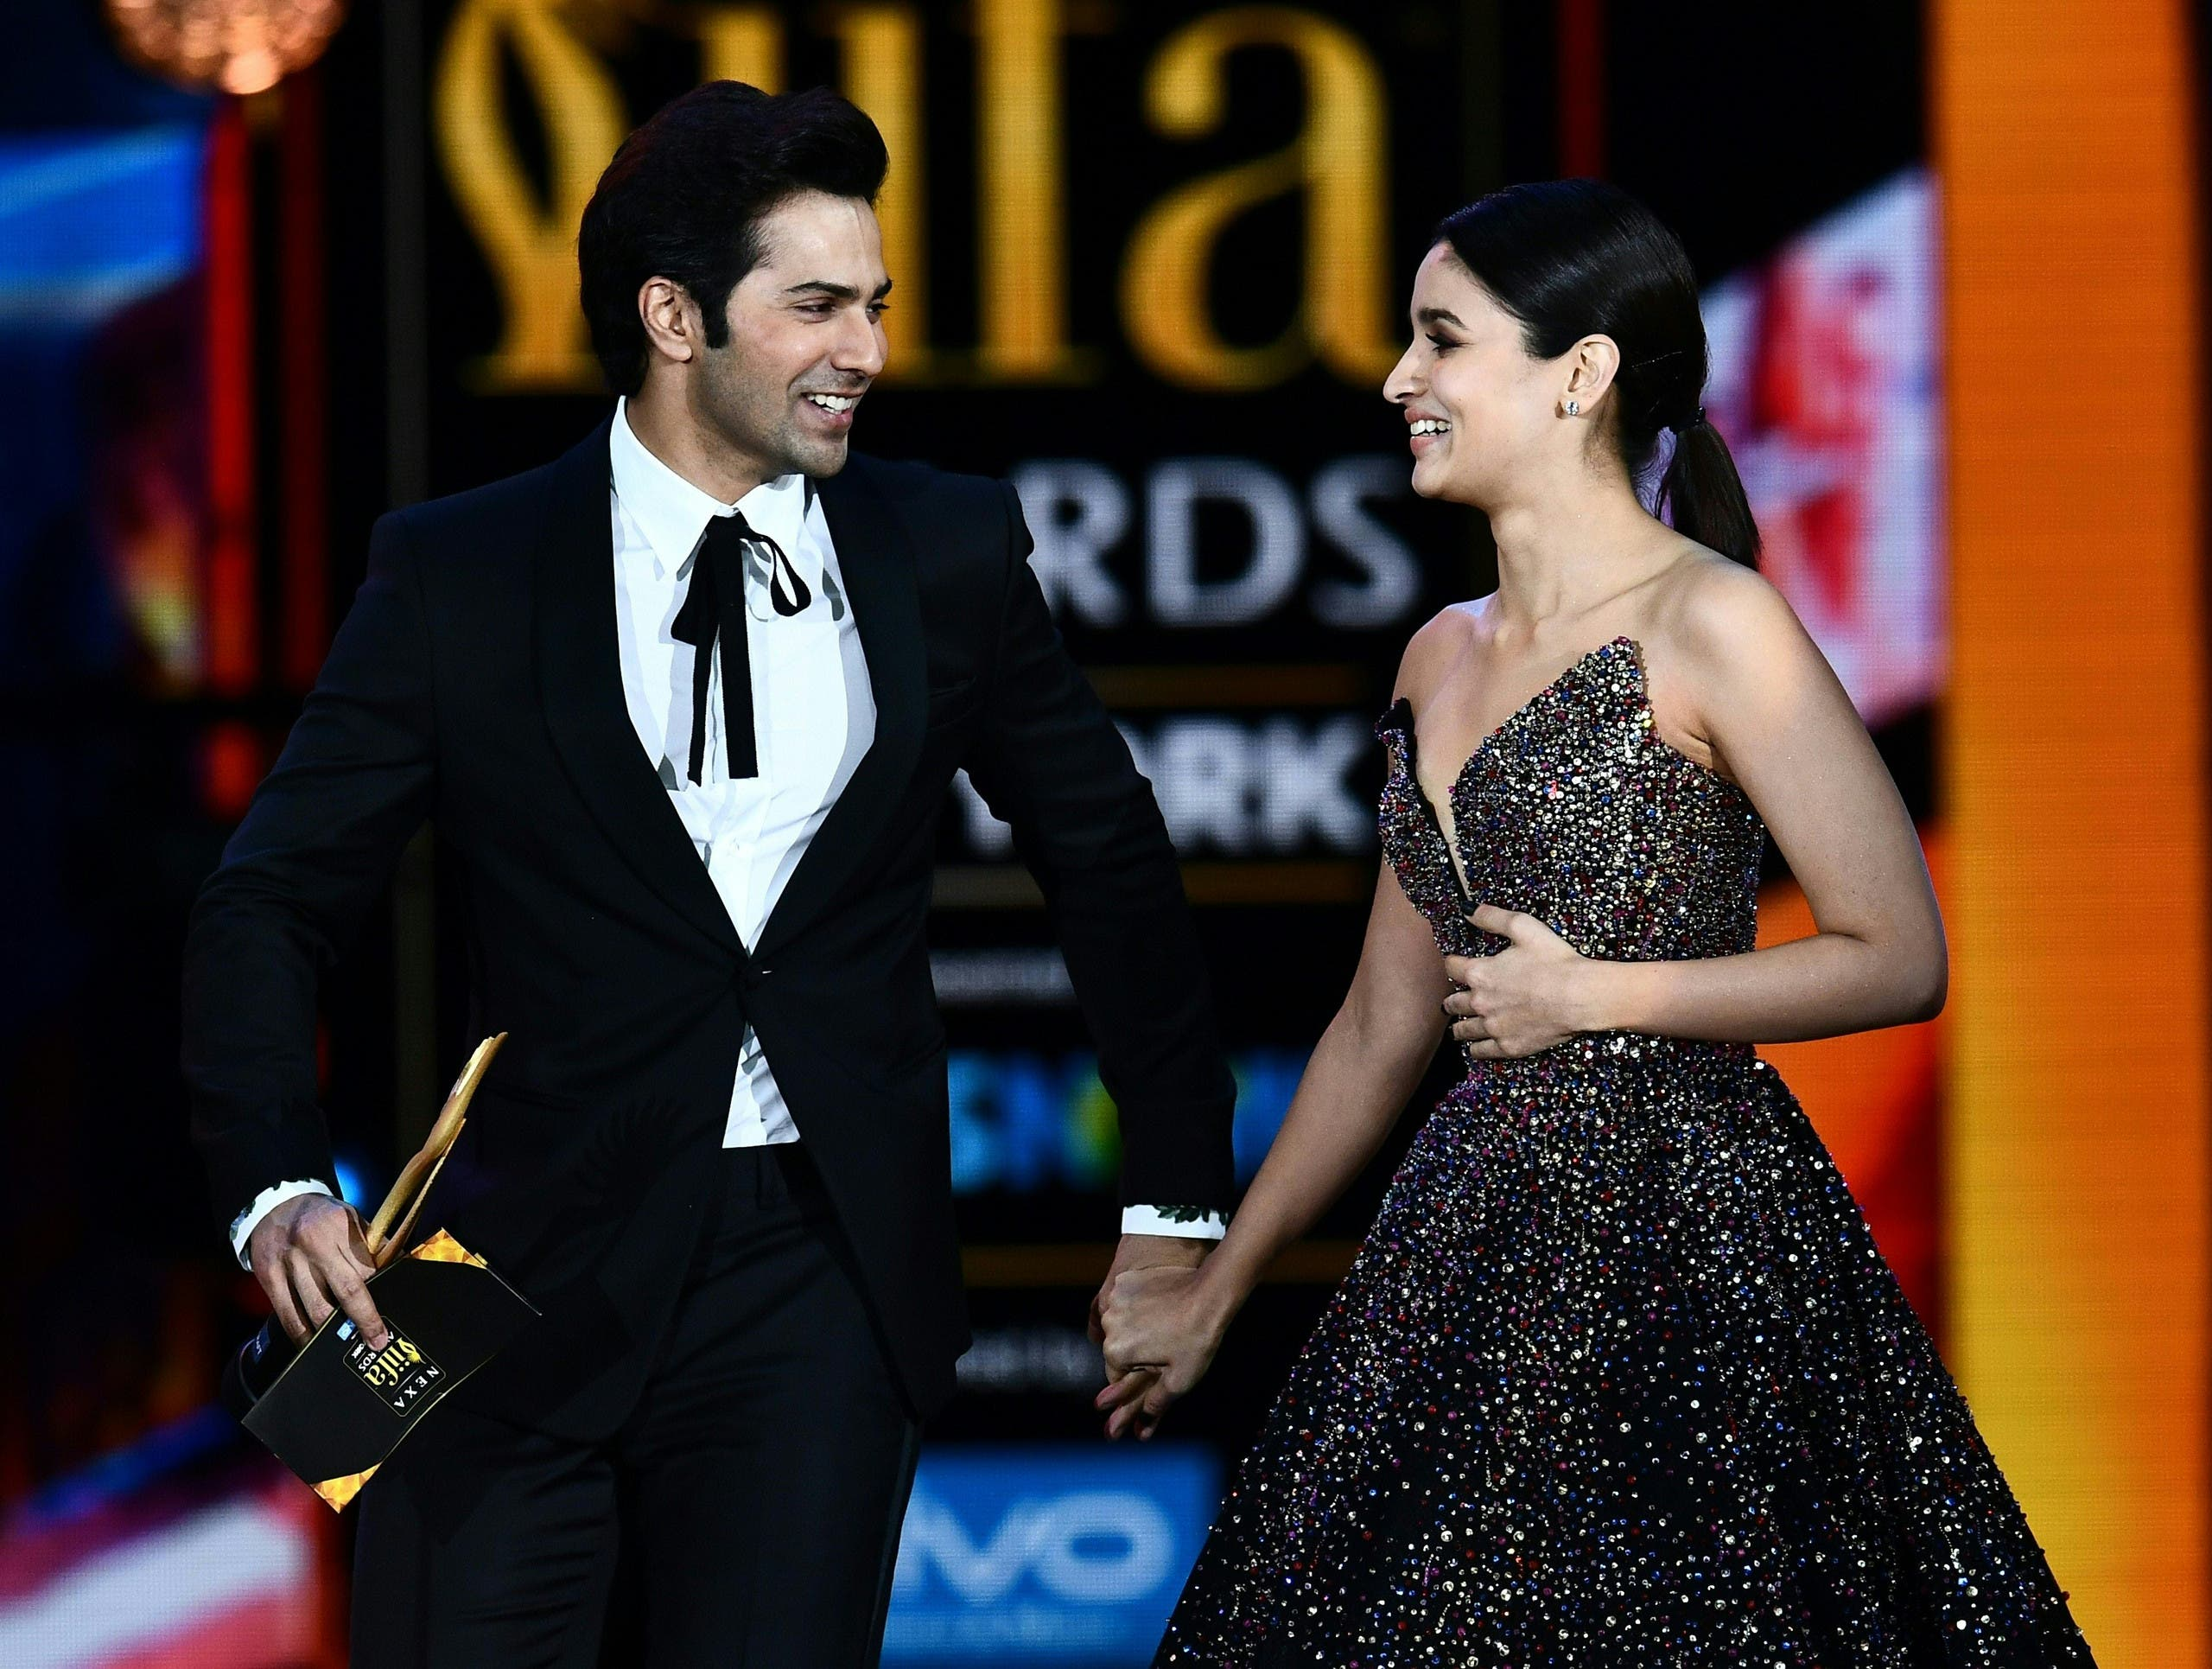 Alia Bhatt reacts after learning she got the award for Best Actress as she arrives with Varun Dhawan on stage during the IIFA Awards July 15, 2017 AFP